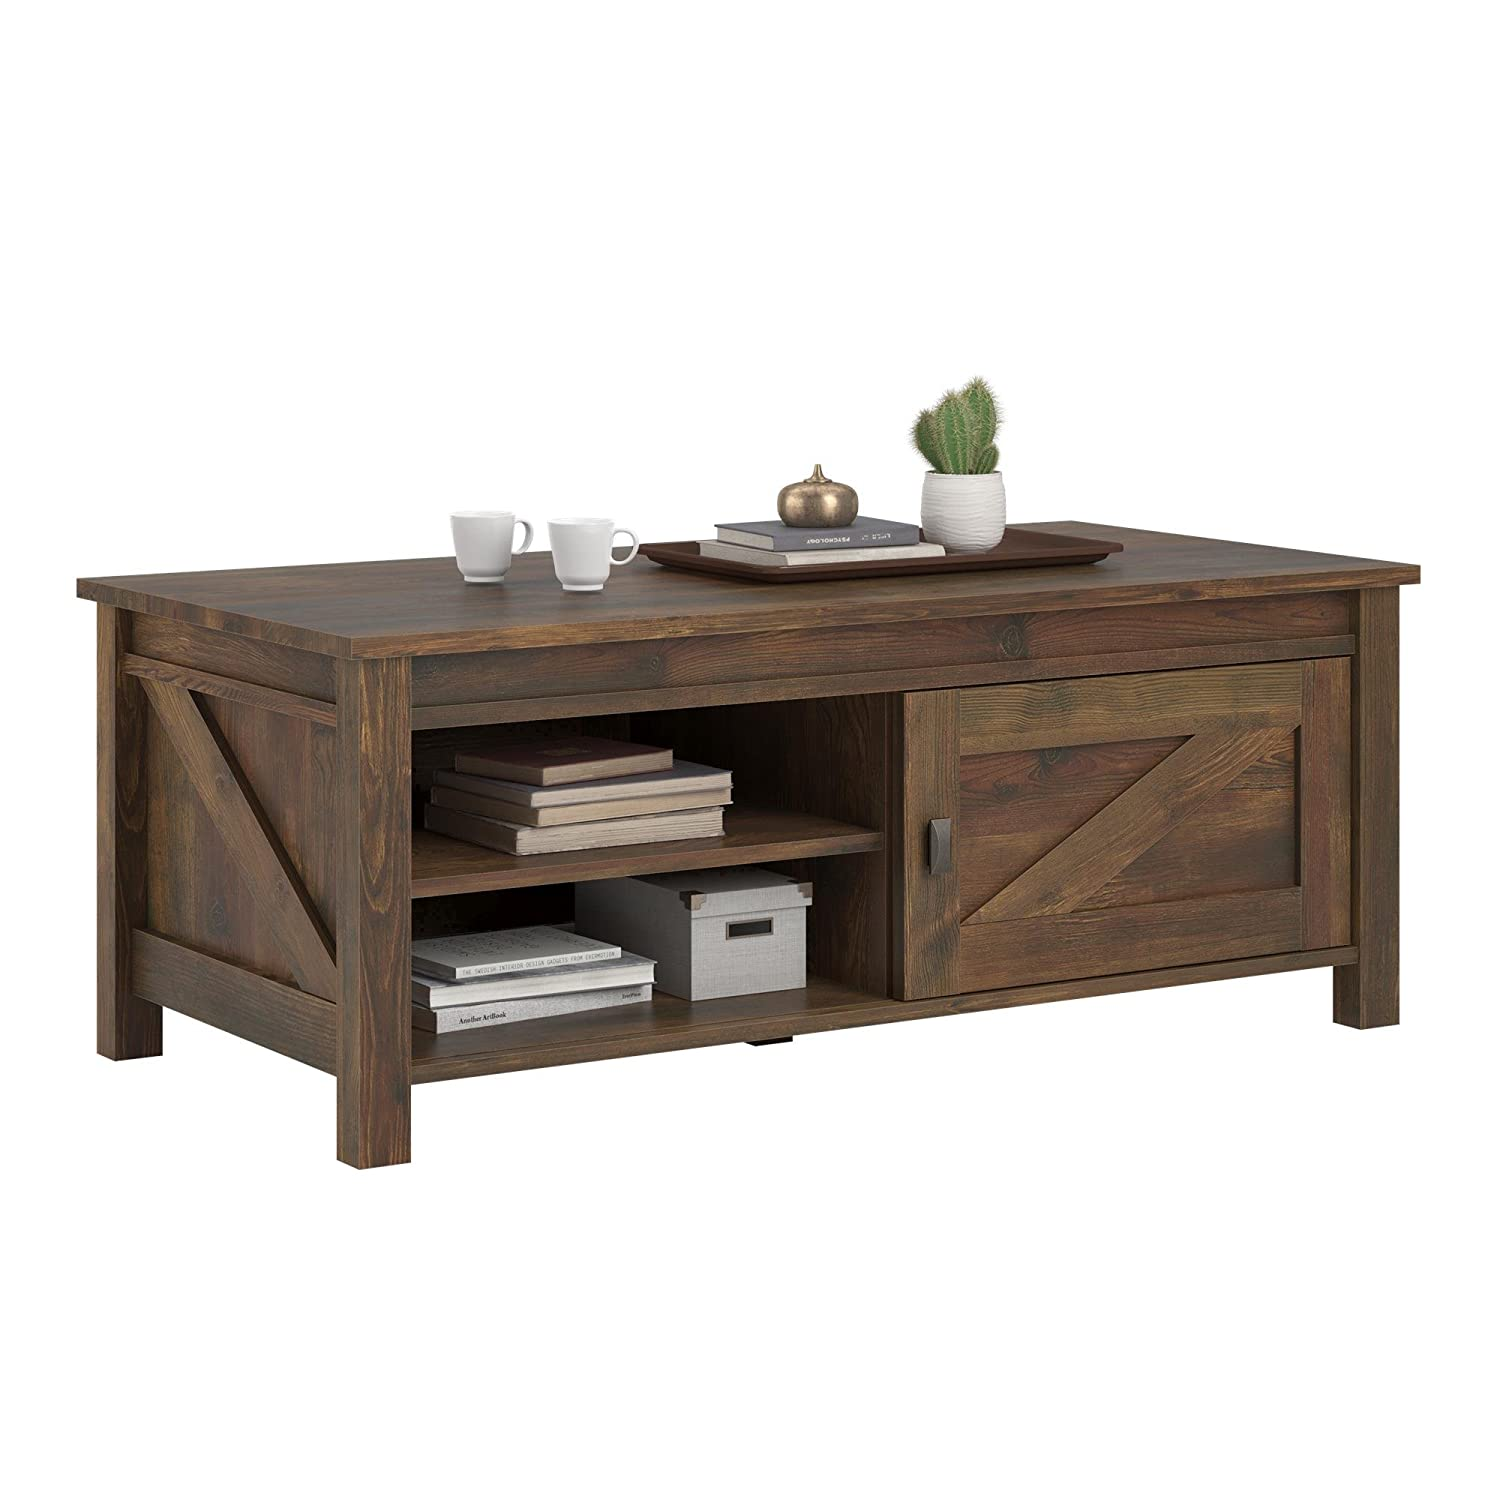 Amazon ameriwood home farmington coffee table rustic amazon ameriwood home farmington coffee table rustic kitchen dining geotapseo Gallery